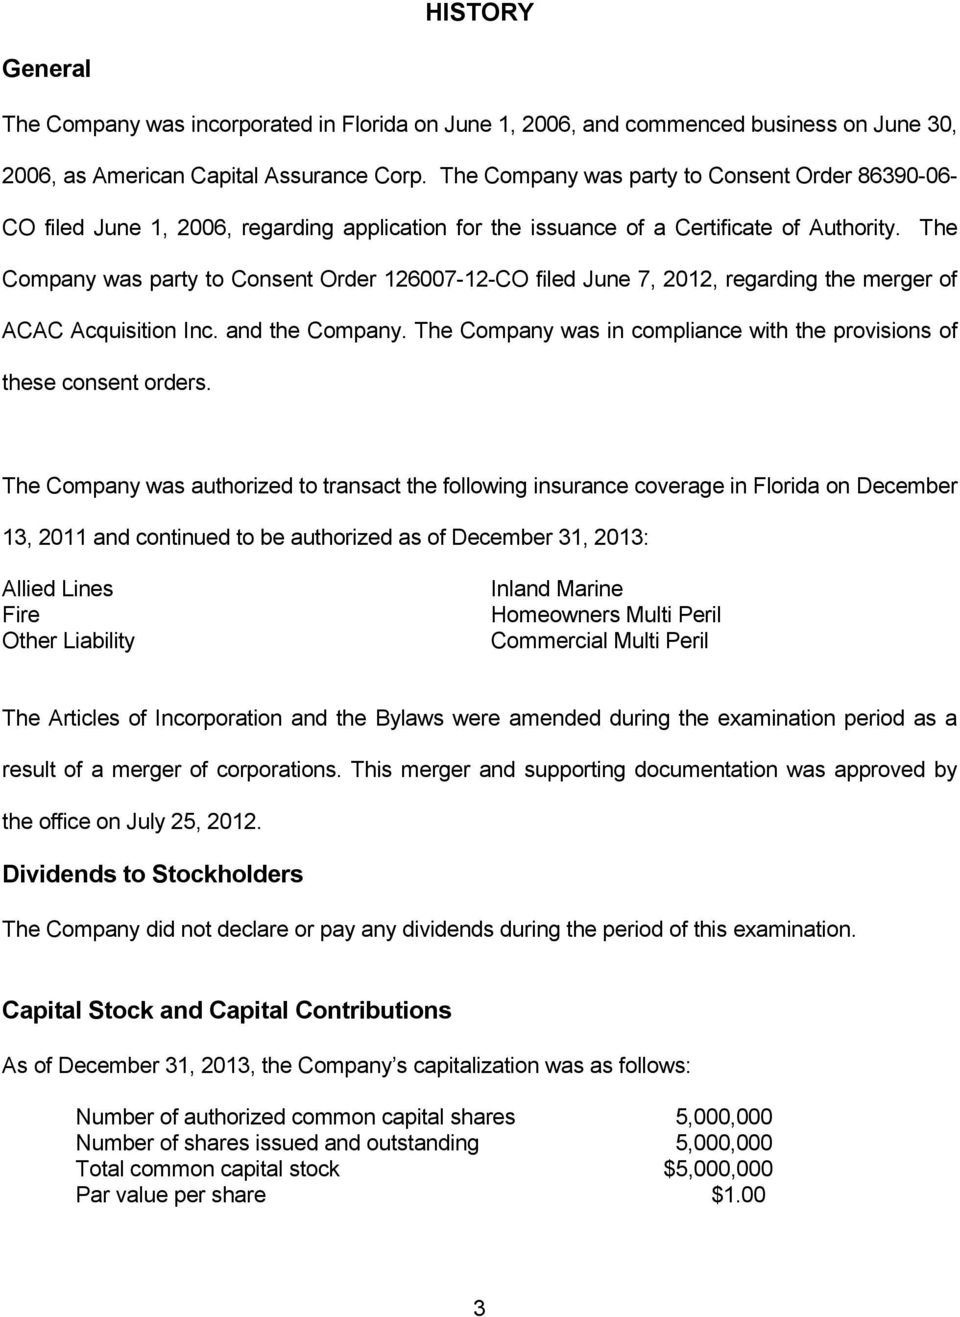 The Company was party to Consent Order 126007-12-CO filed June 7, 2012, regarding the merger of ACAC Acquisition Inc. and the Company.